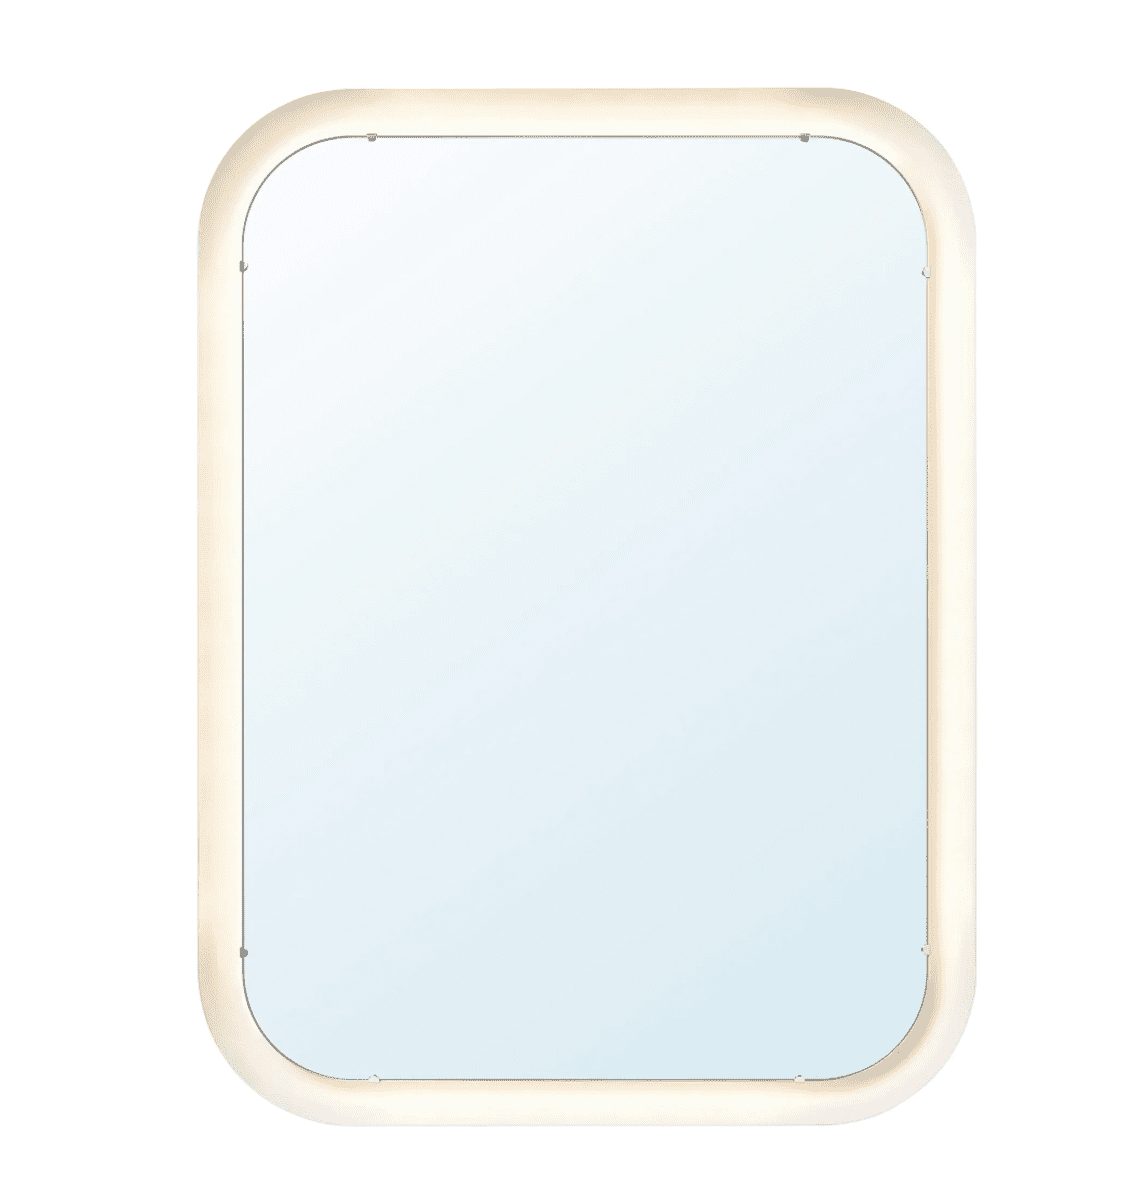 6 Ikea Mirrors You Didn T Know You Needed Until Now